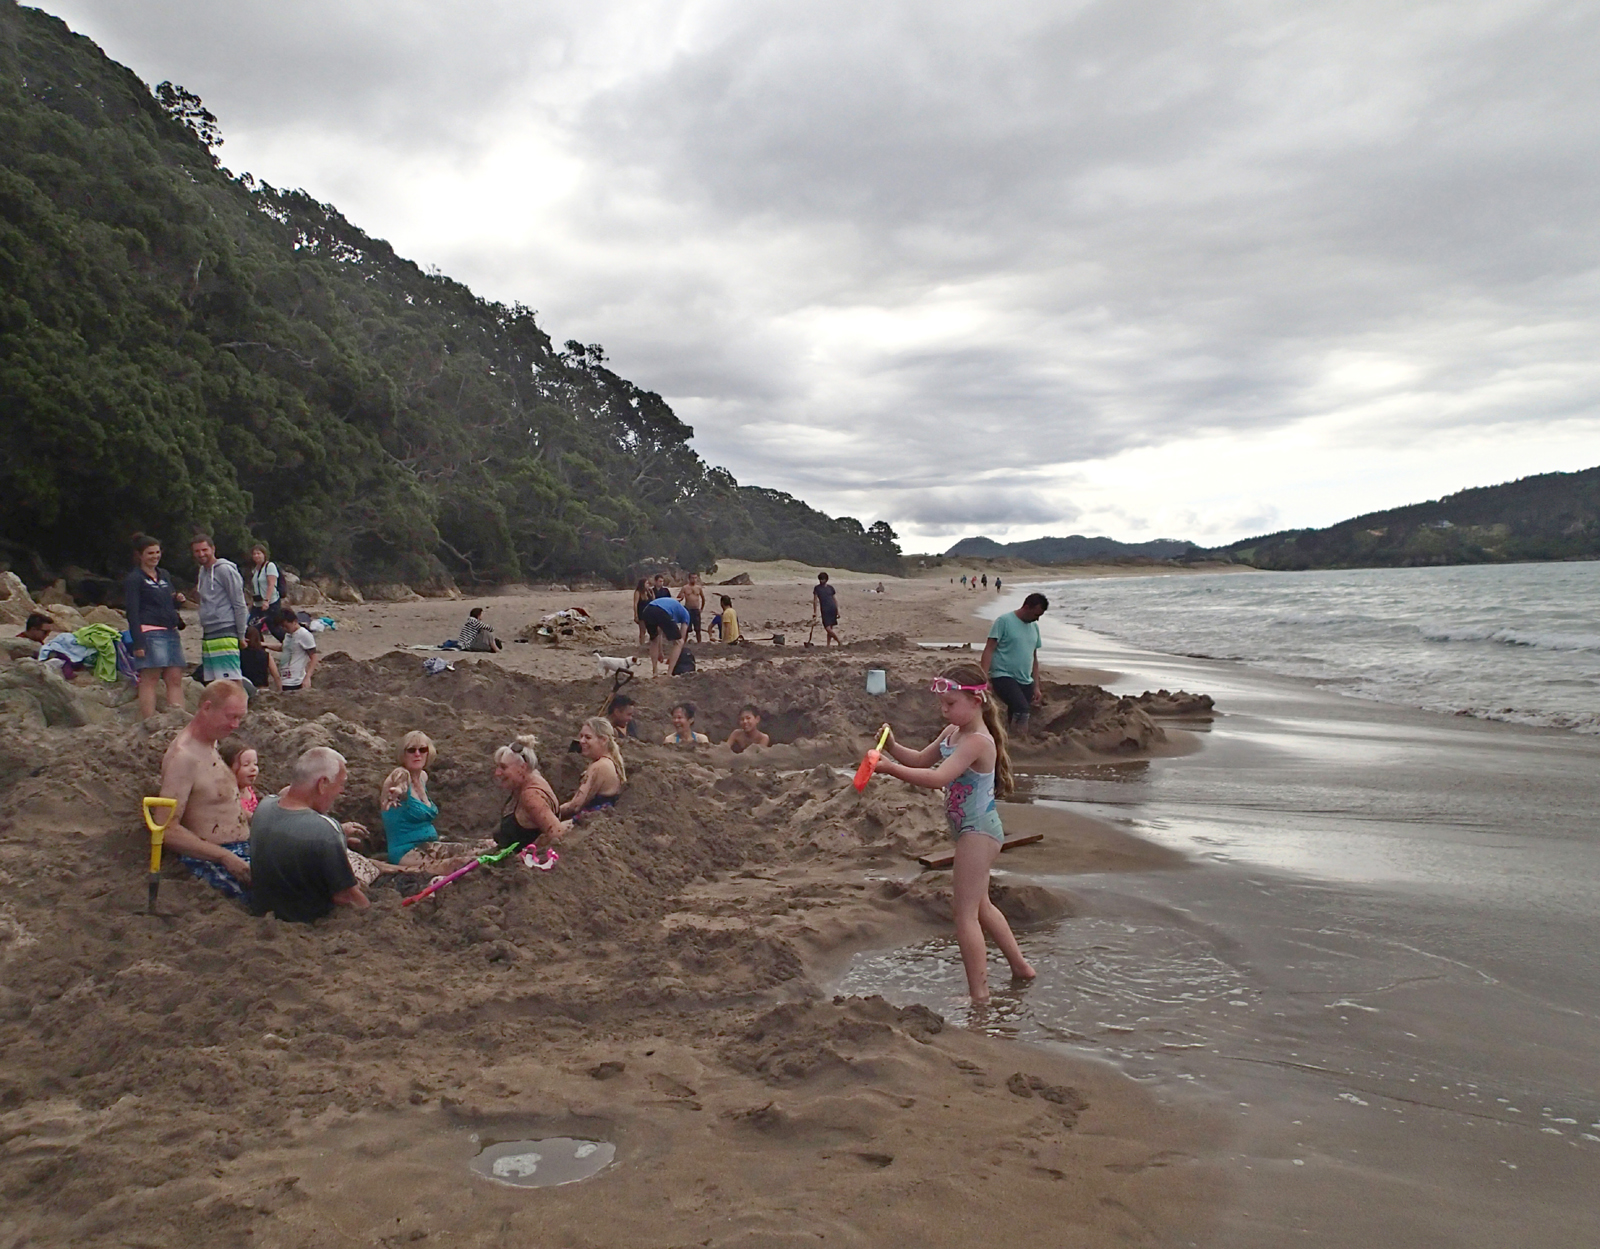 beach with children and adults in holes dug in sand, with sea